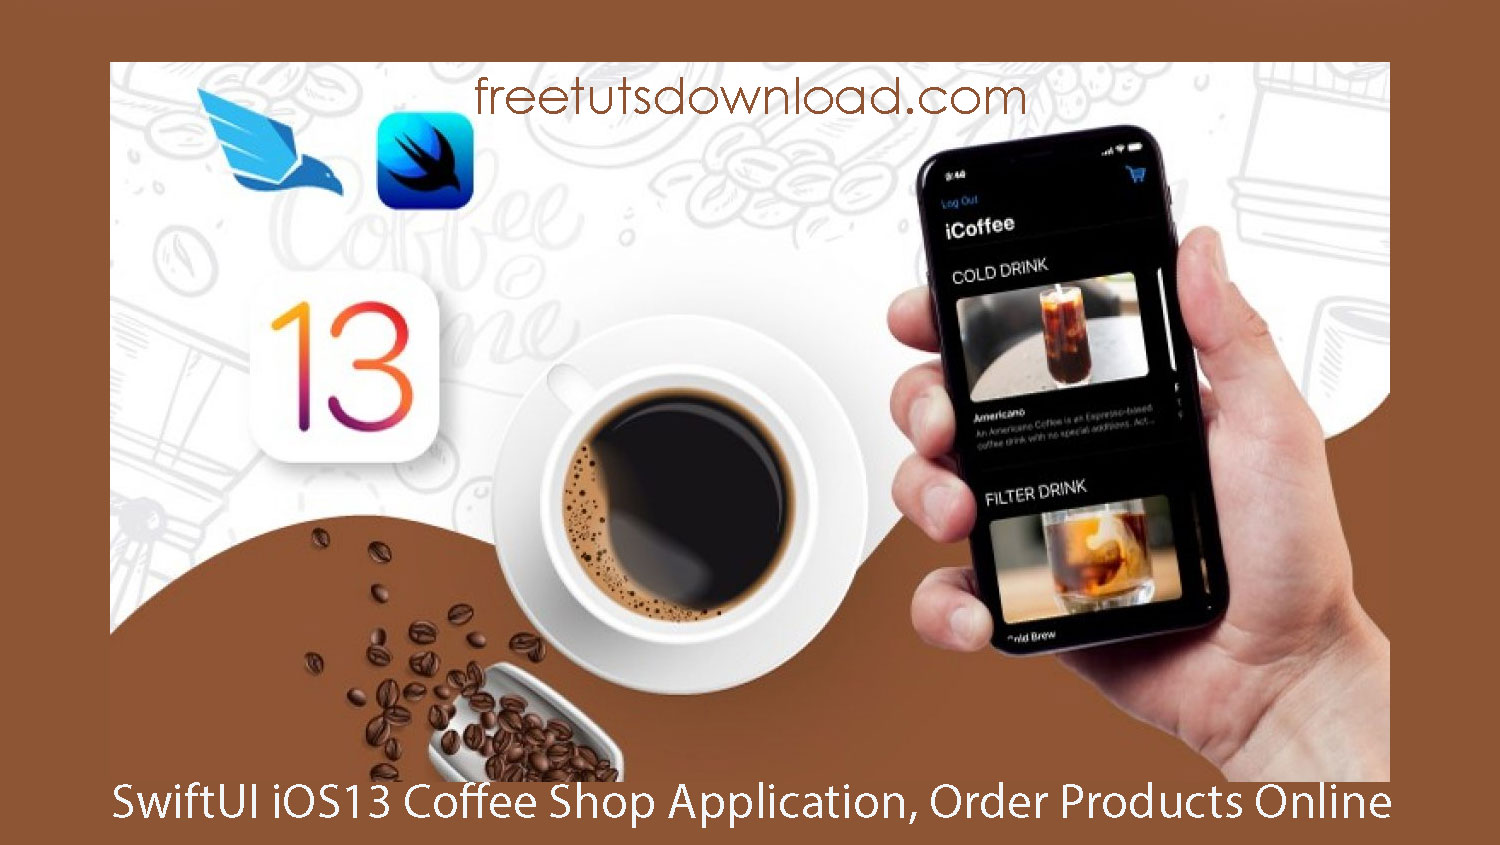 SwiftUI iOS13 Coffee Shop Application, Order Products Online free download